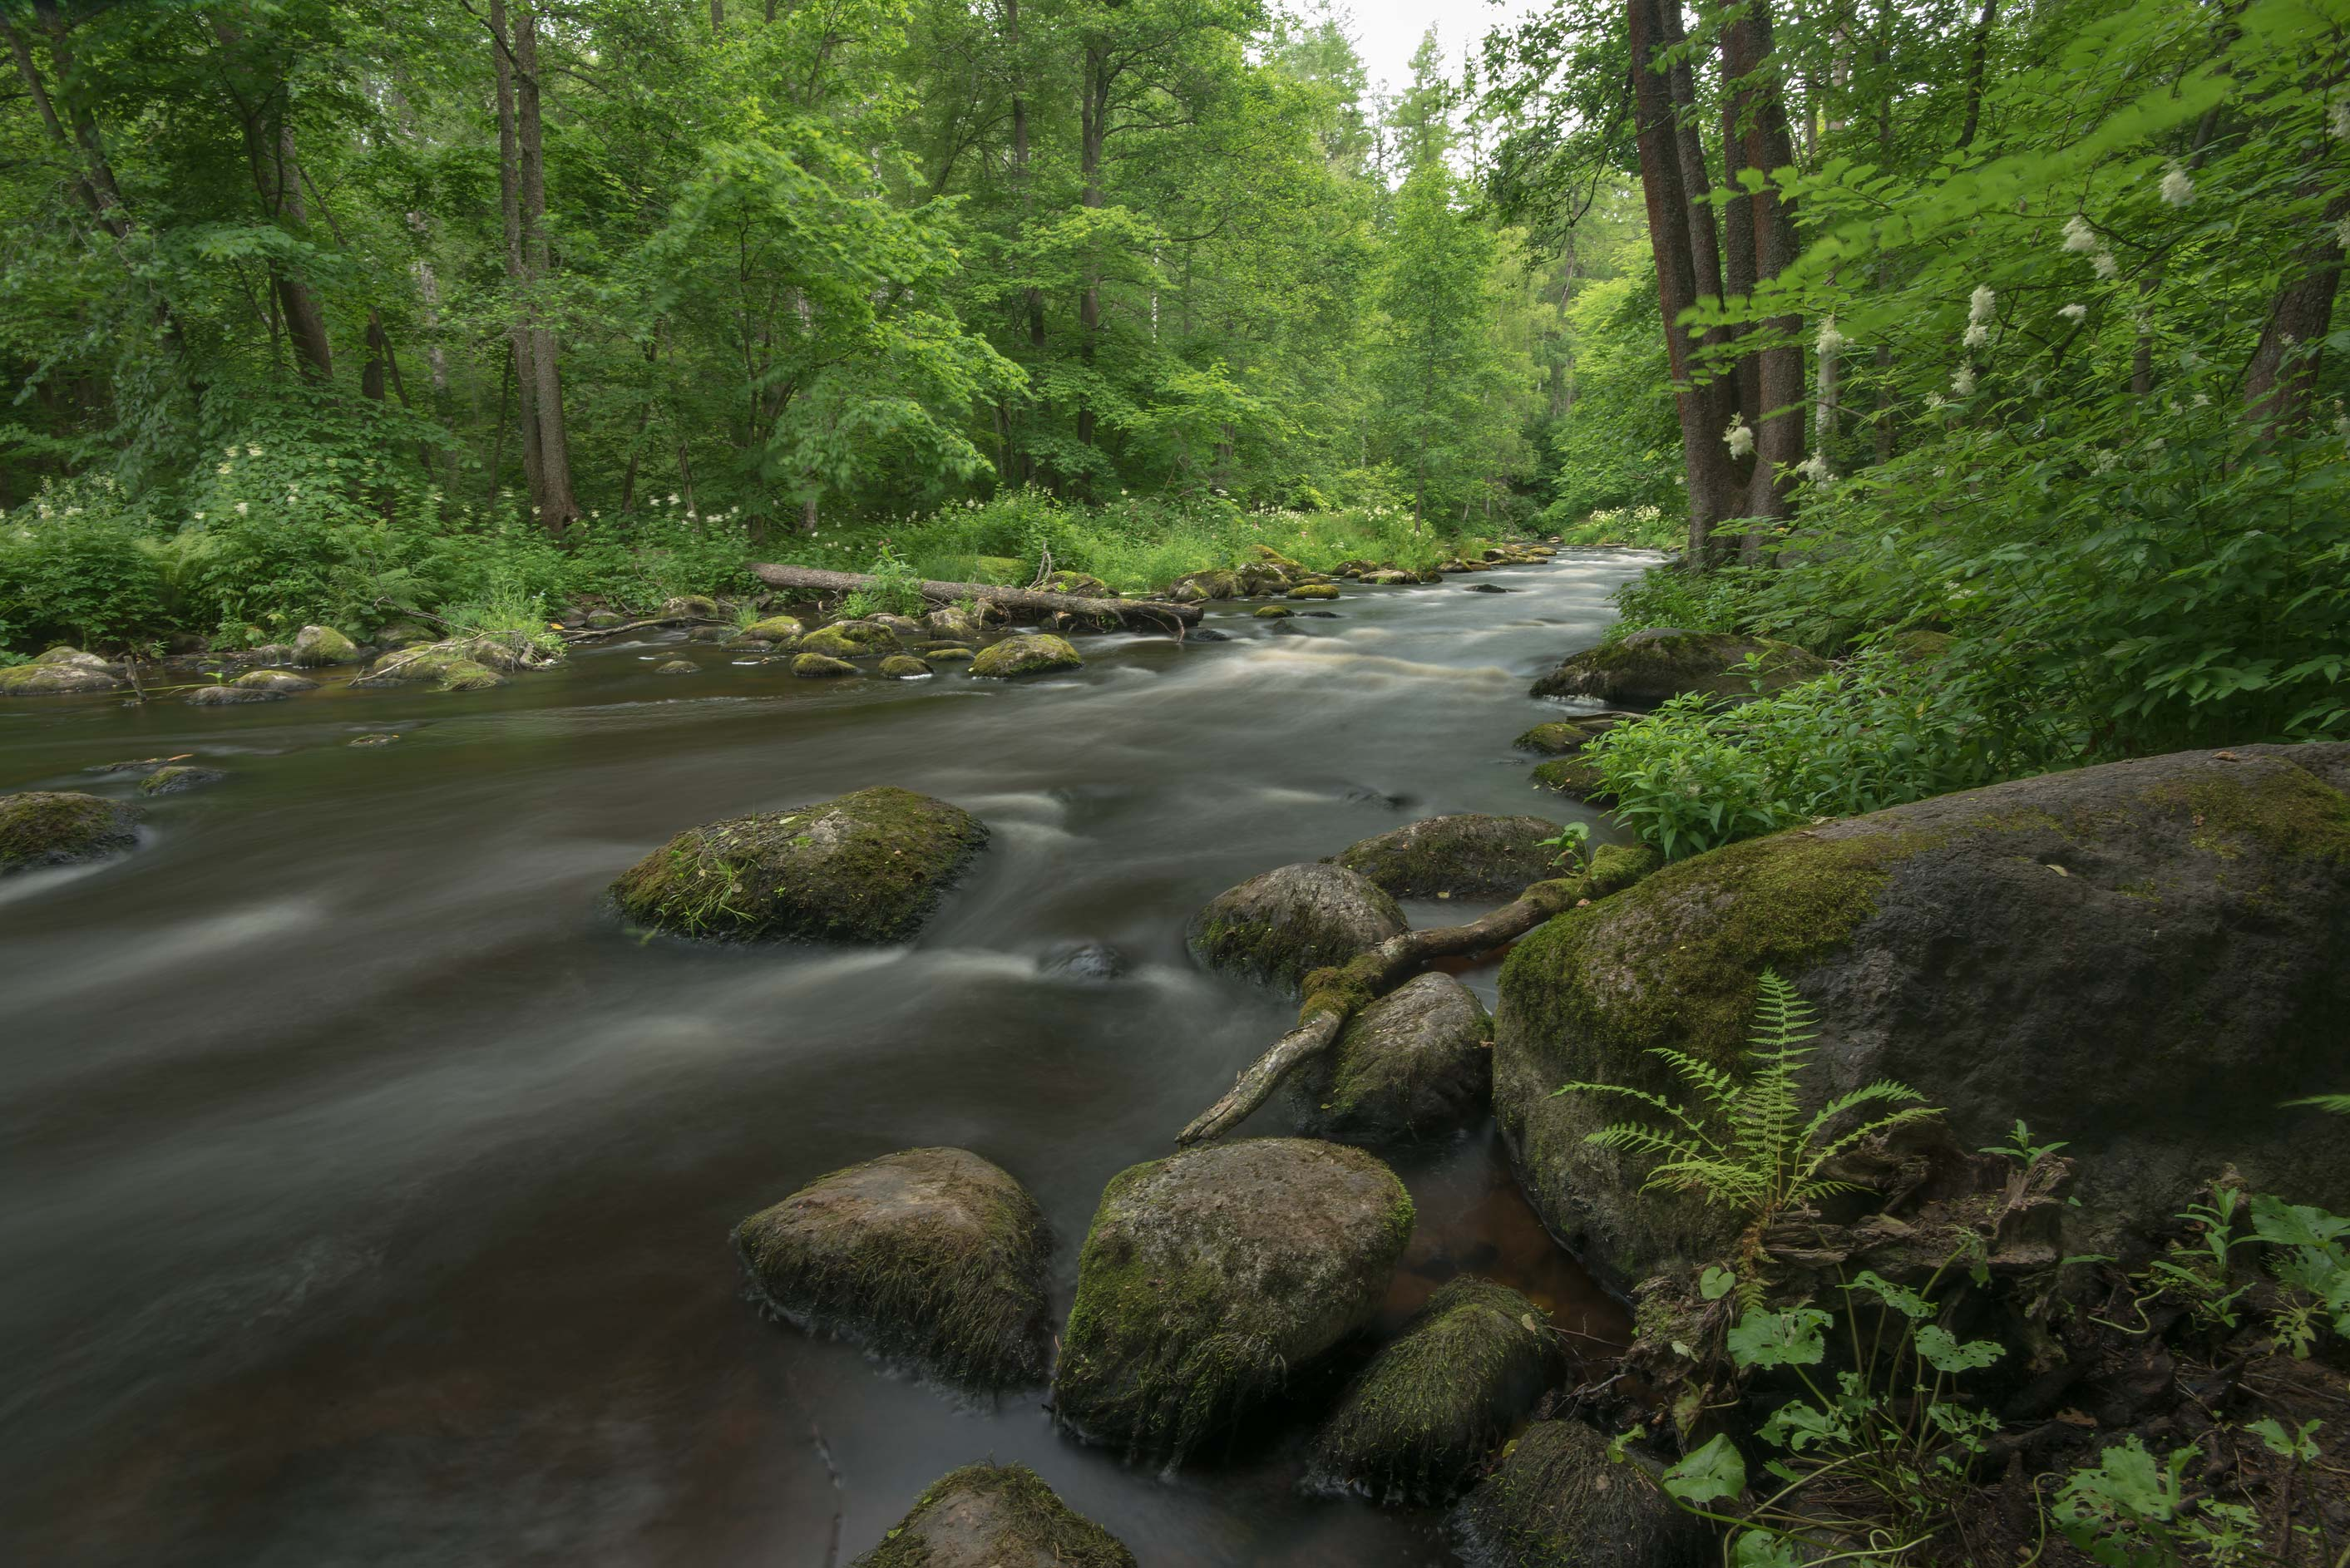 Roshchinka River in a forest in Lindulovskaya...north-west from St.Petersburg. Russia